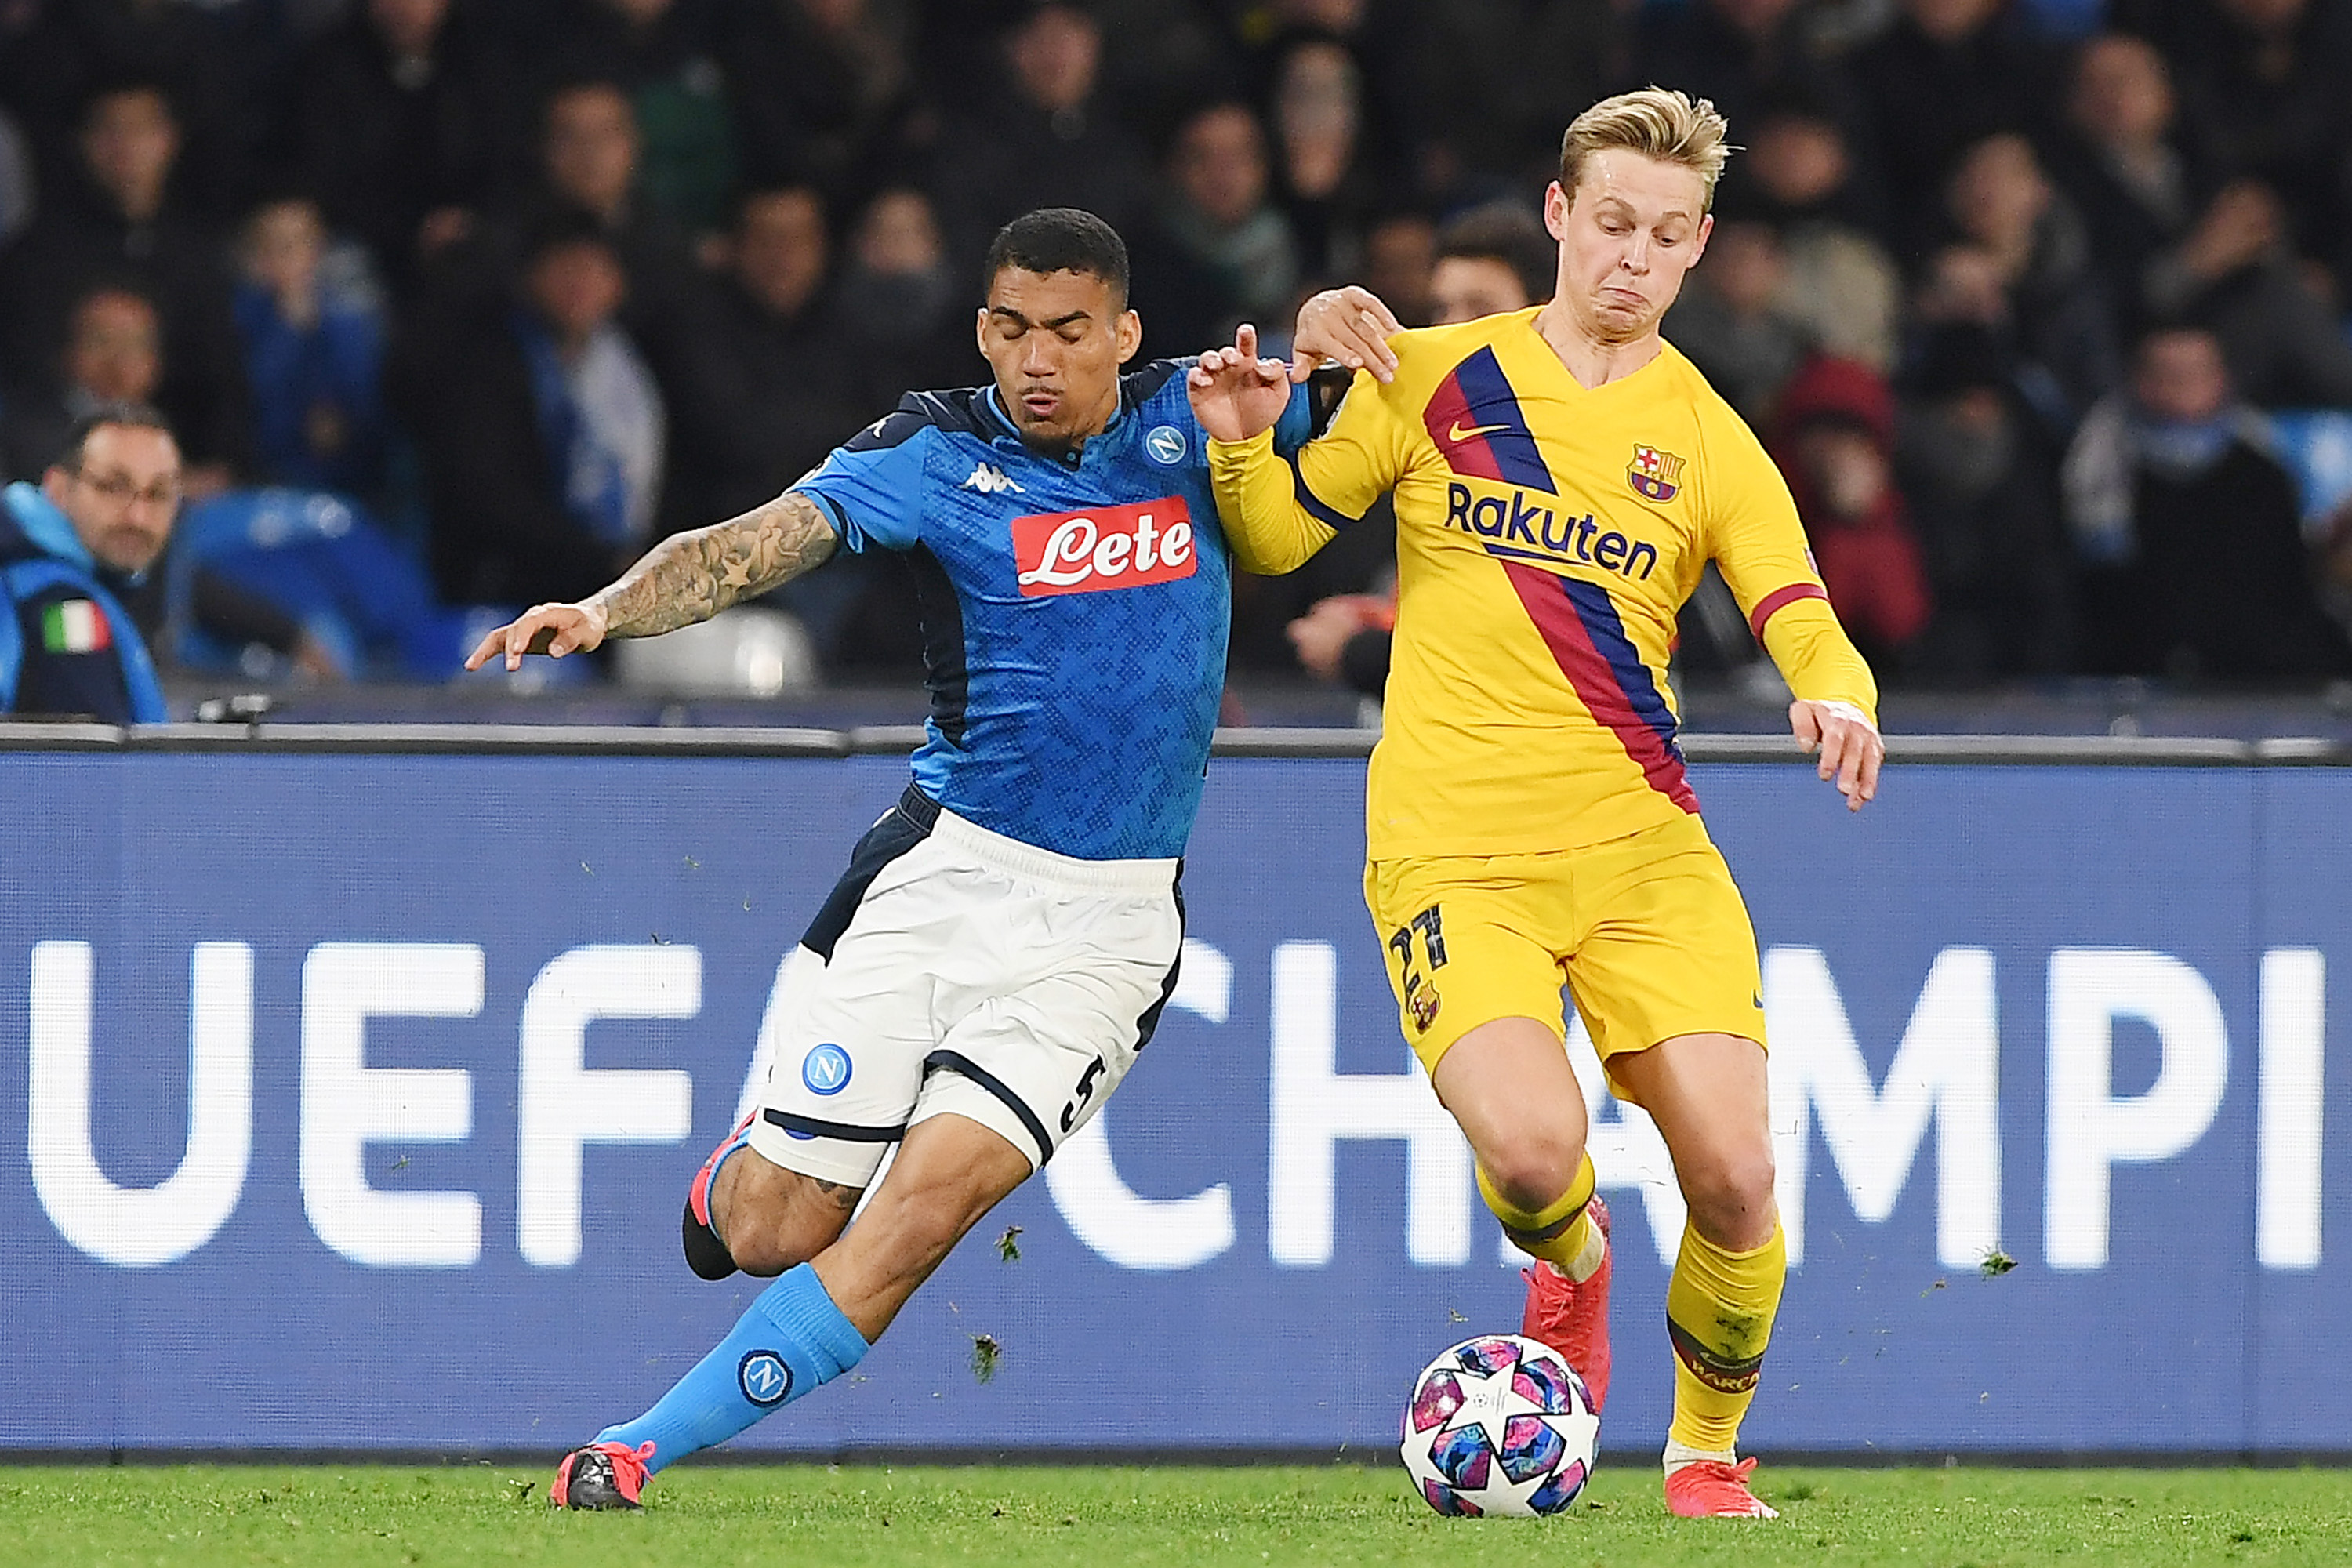 Everton set to win the race for Napoli midfielder Allan who is in action in the picture